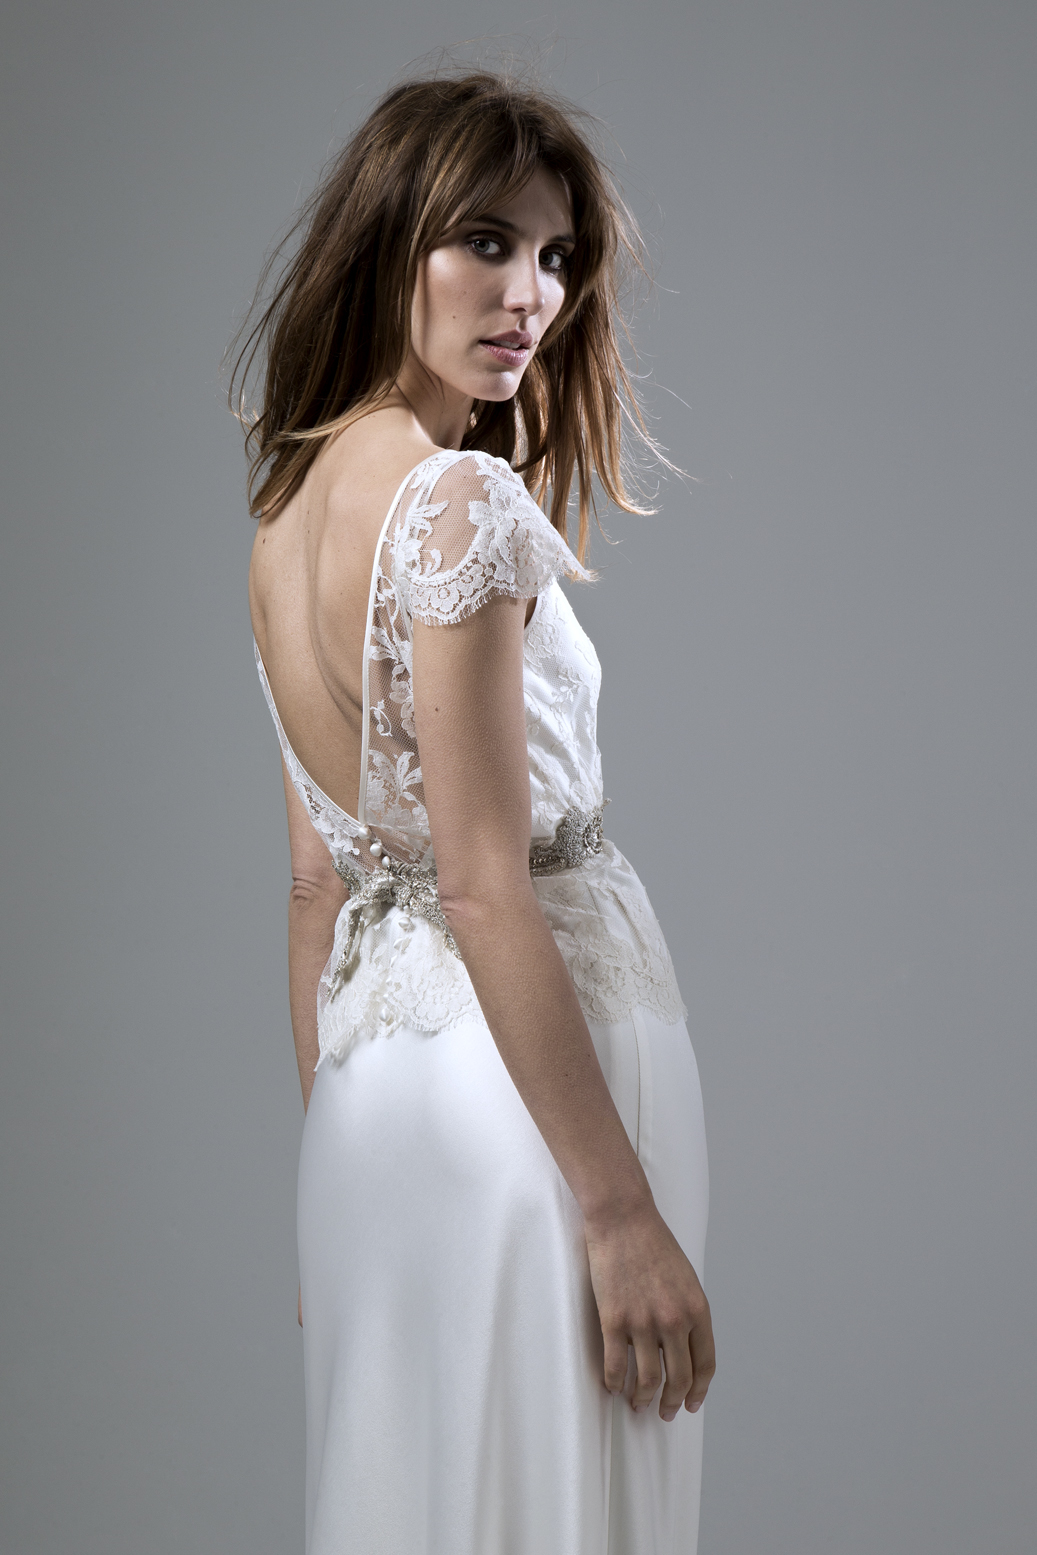 Detailed back view of the Iris French Lace Jacket and Iris low backed satin Slip Wedding Dress by Halfpenny London